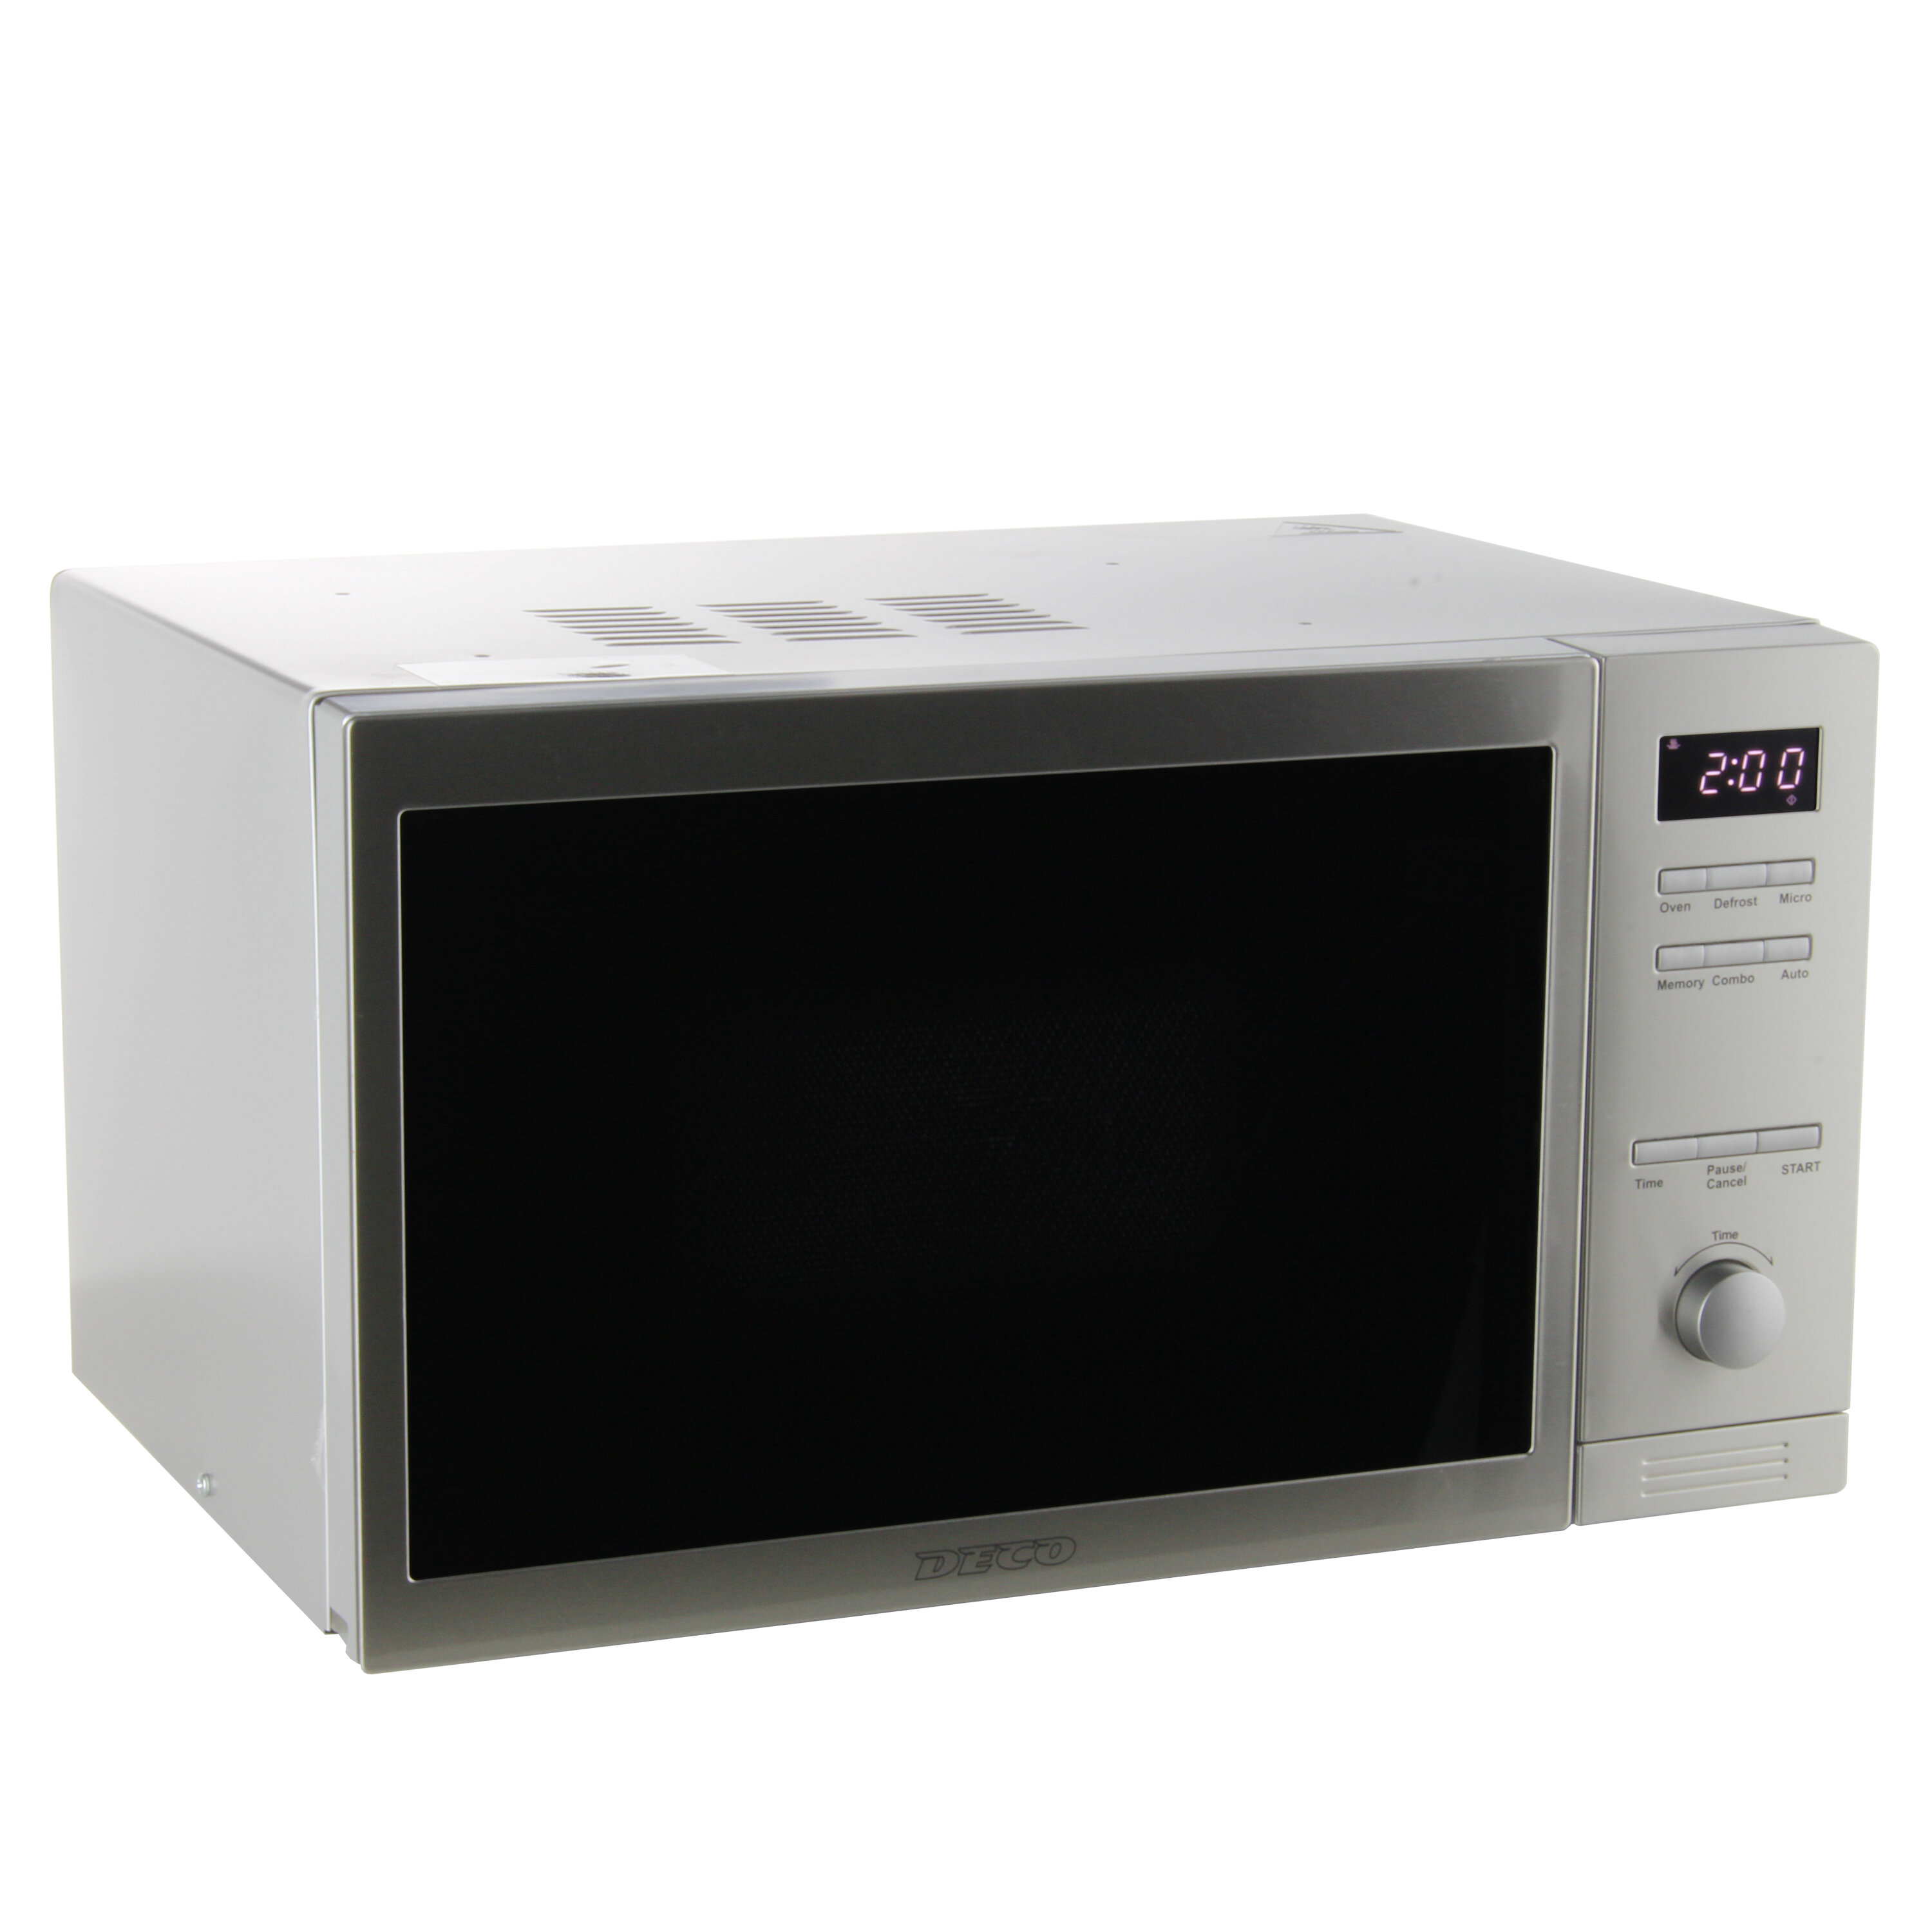 Equator Deco Combo 19 0 8 Cu Ft Countertop Microwave With Memory Cooking Function Reviews Wayfair